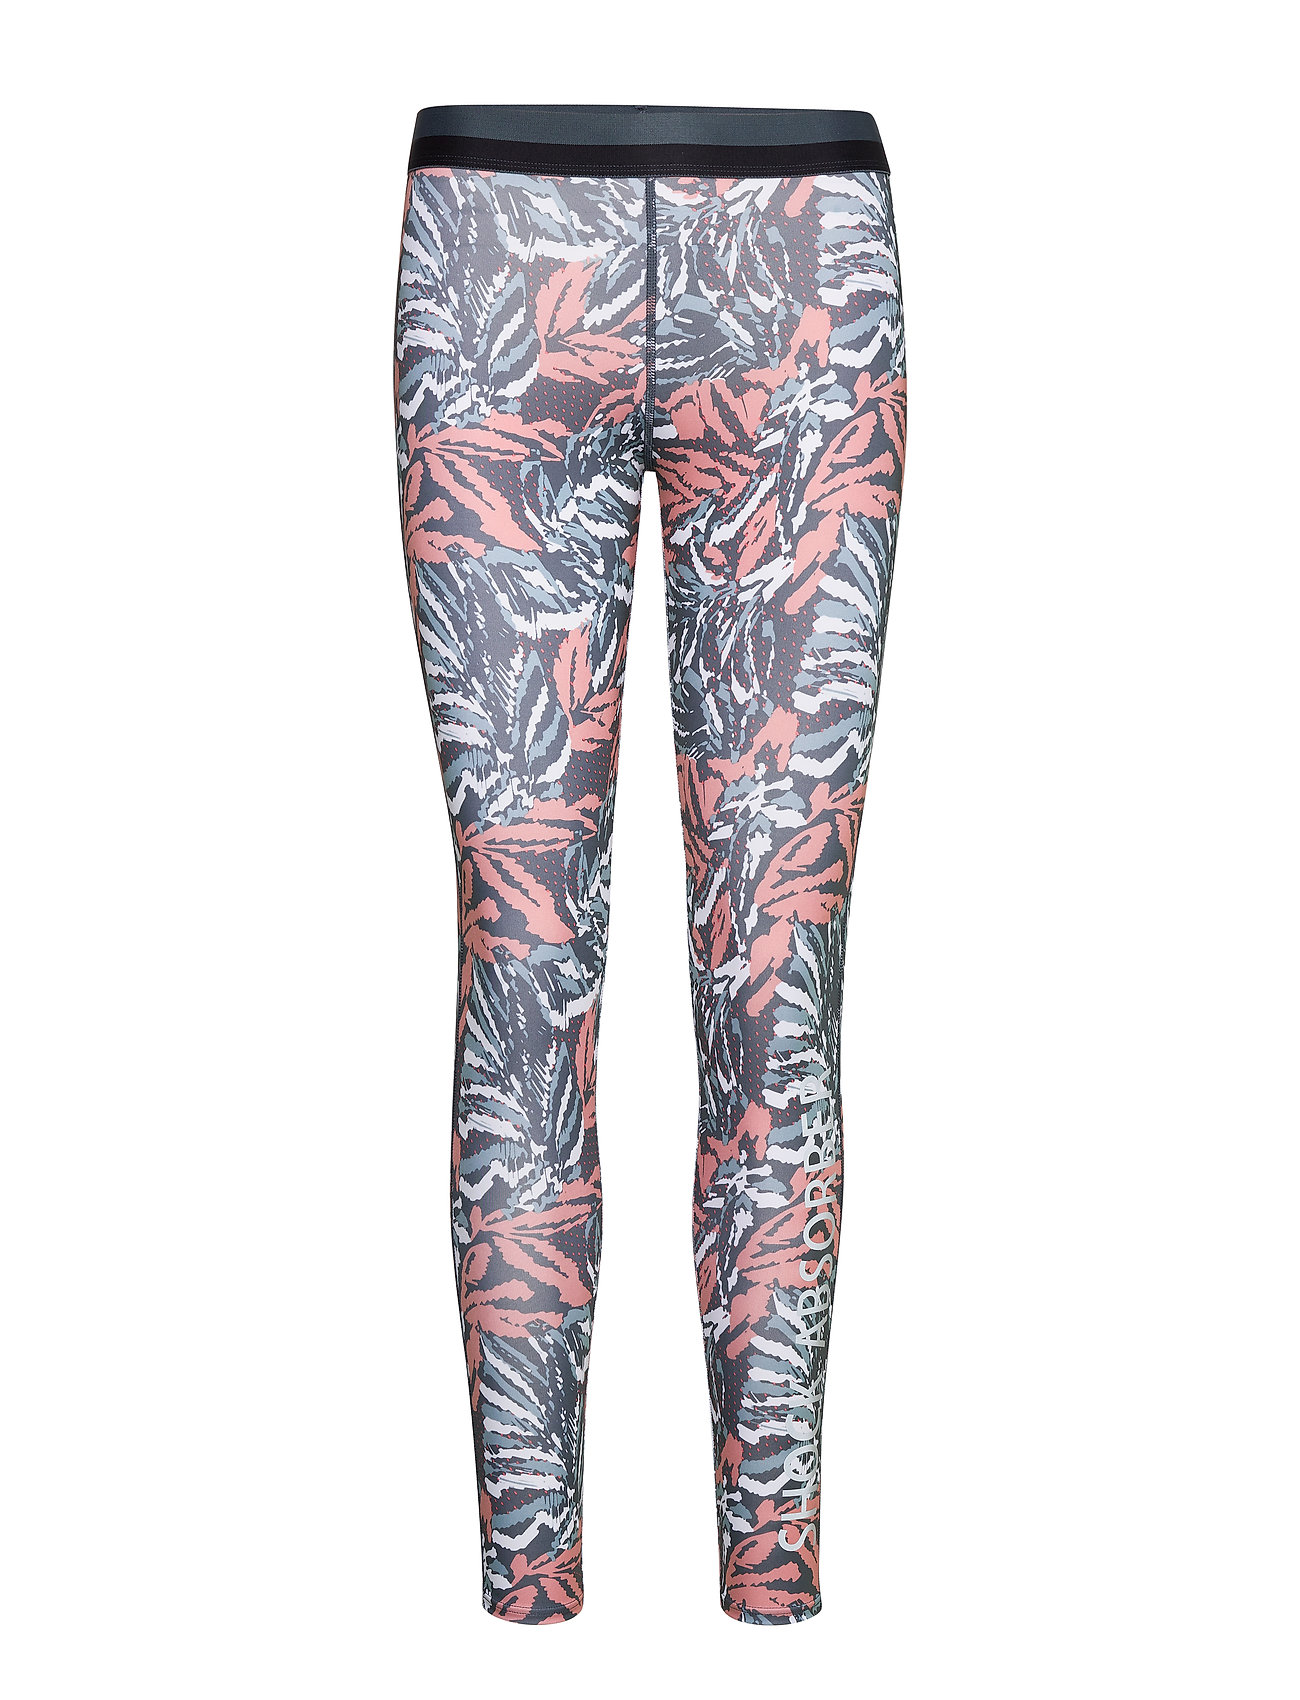 Shock Absorber Active Branded Legging - TROPICAL PRINT